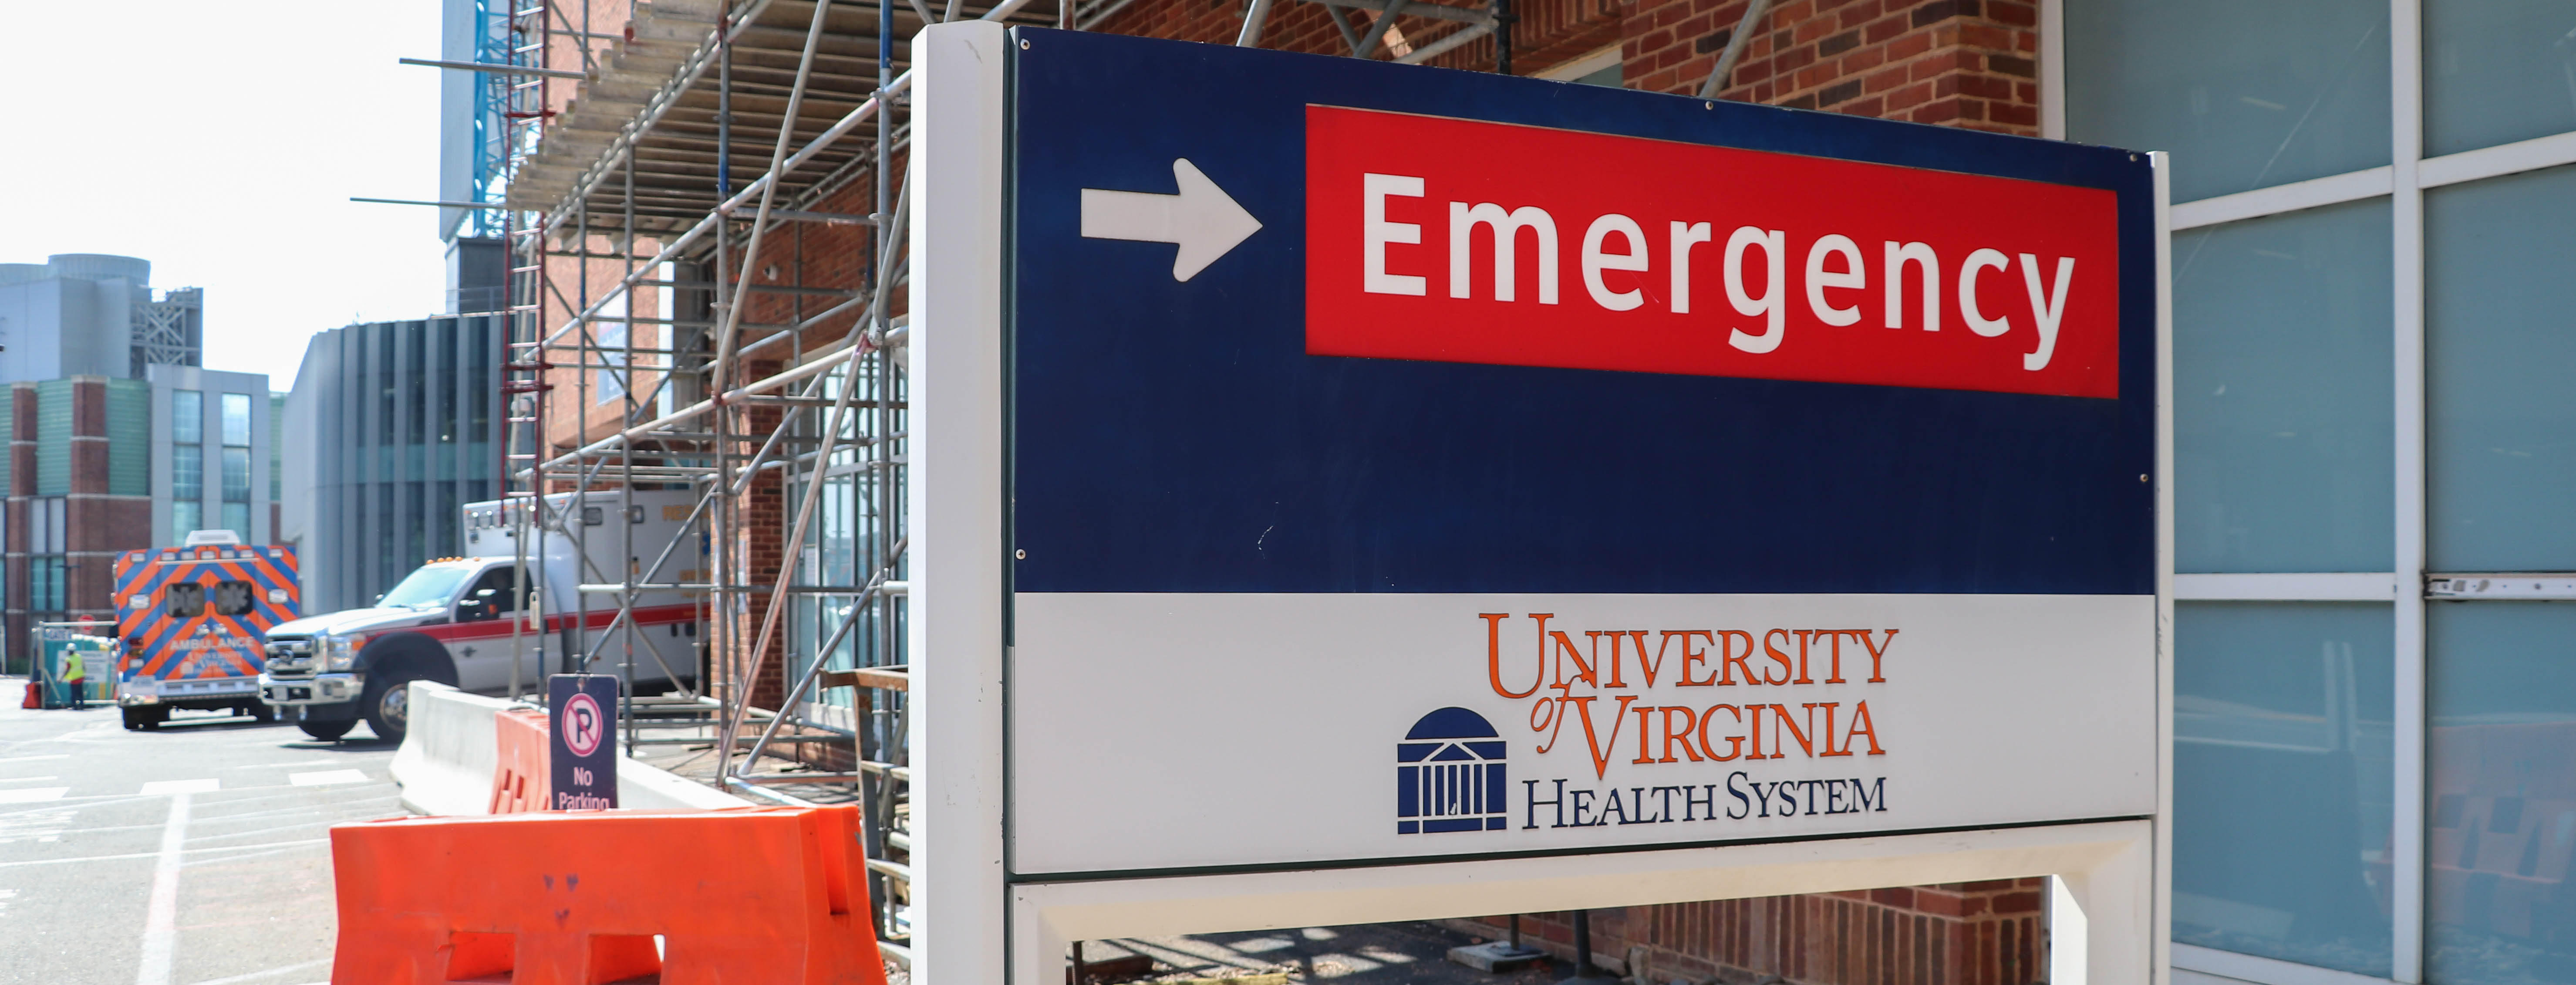 Emergency Medicine | University of Virginia School of Medicine